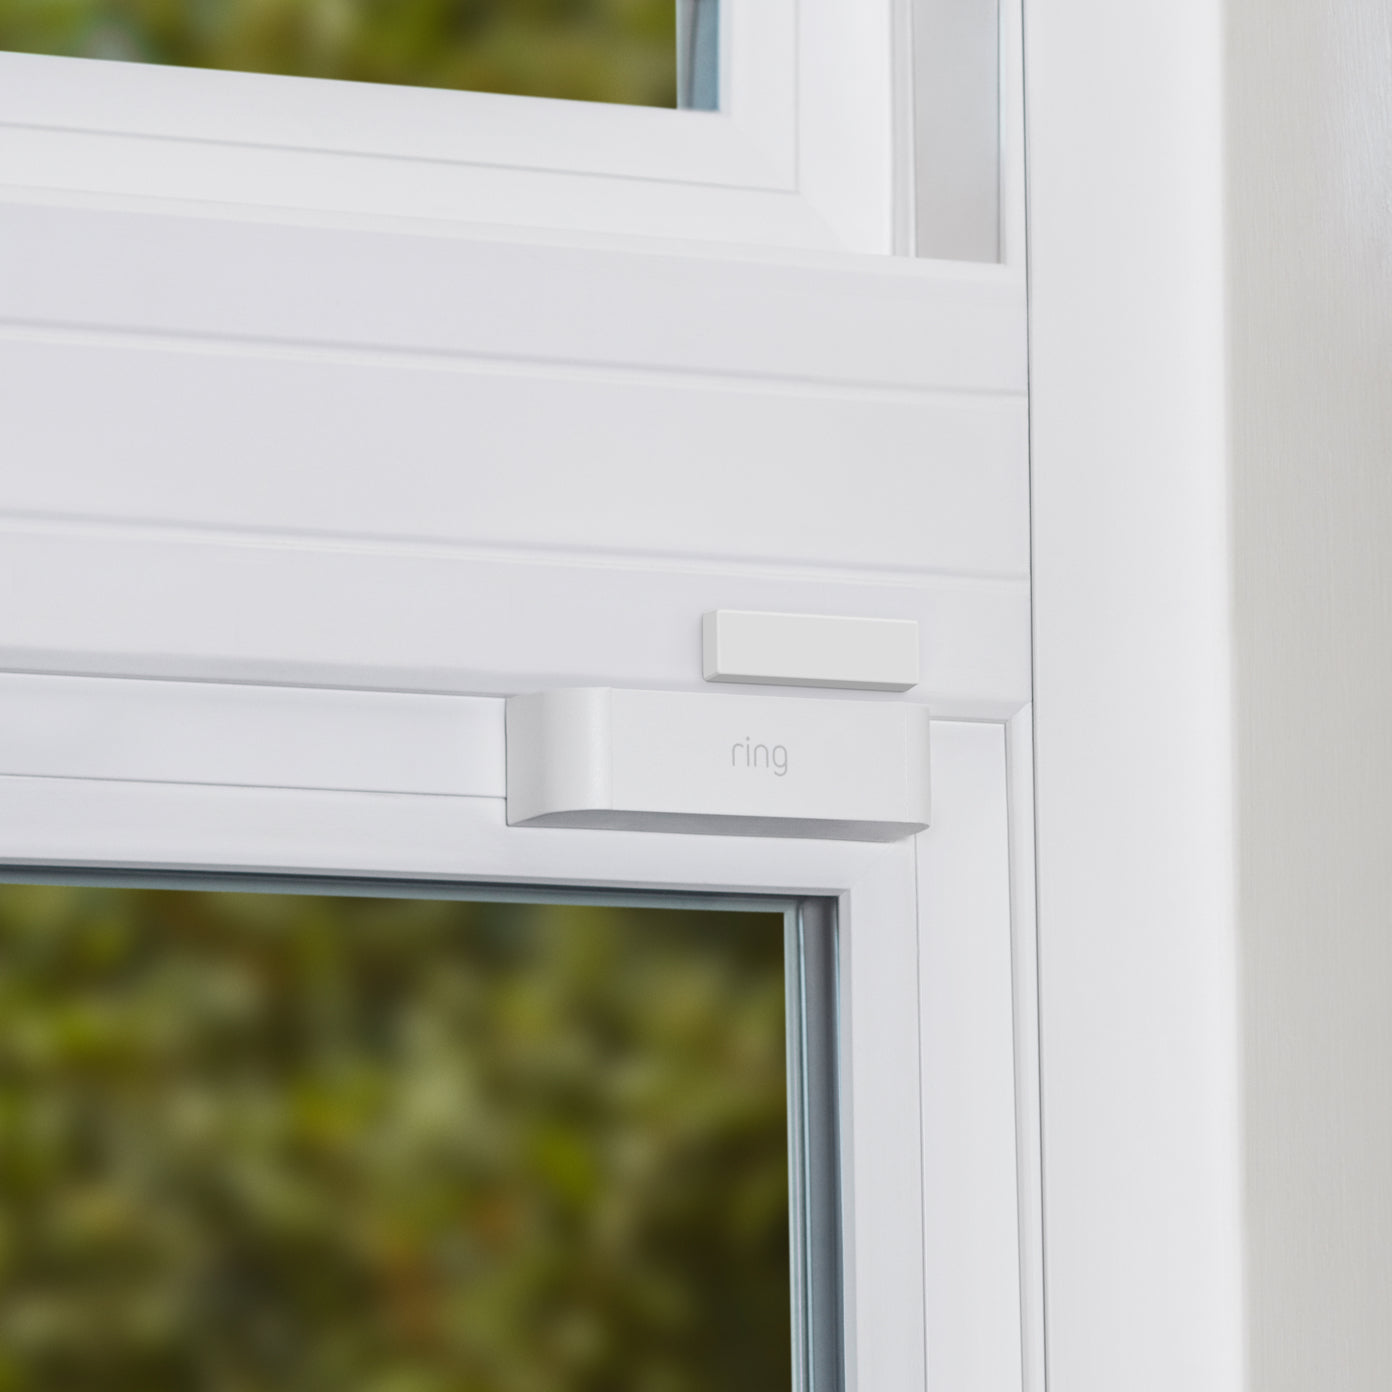 Window frame with Open Window Slim Magnet attached.